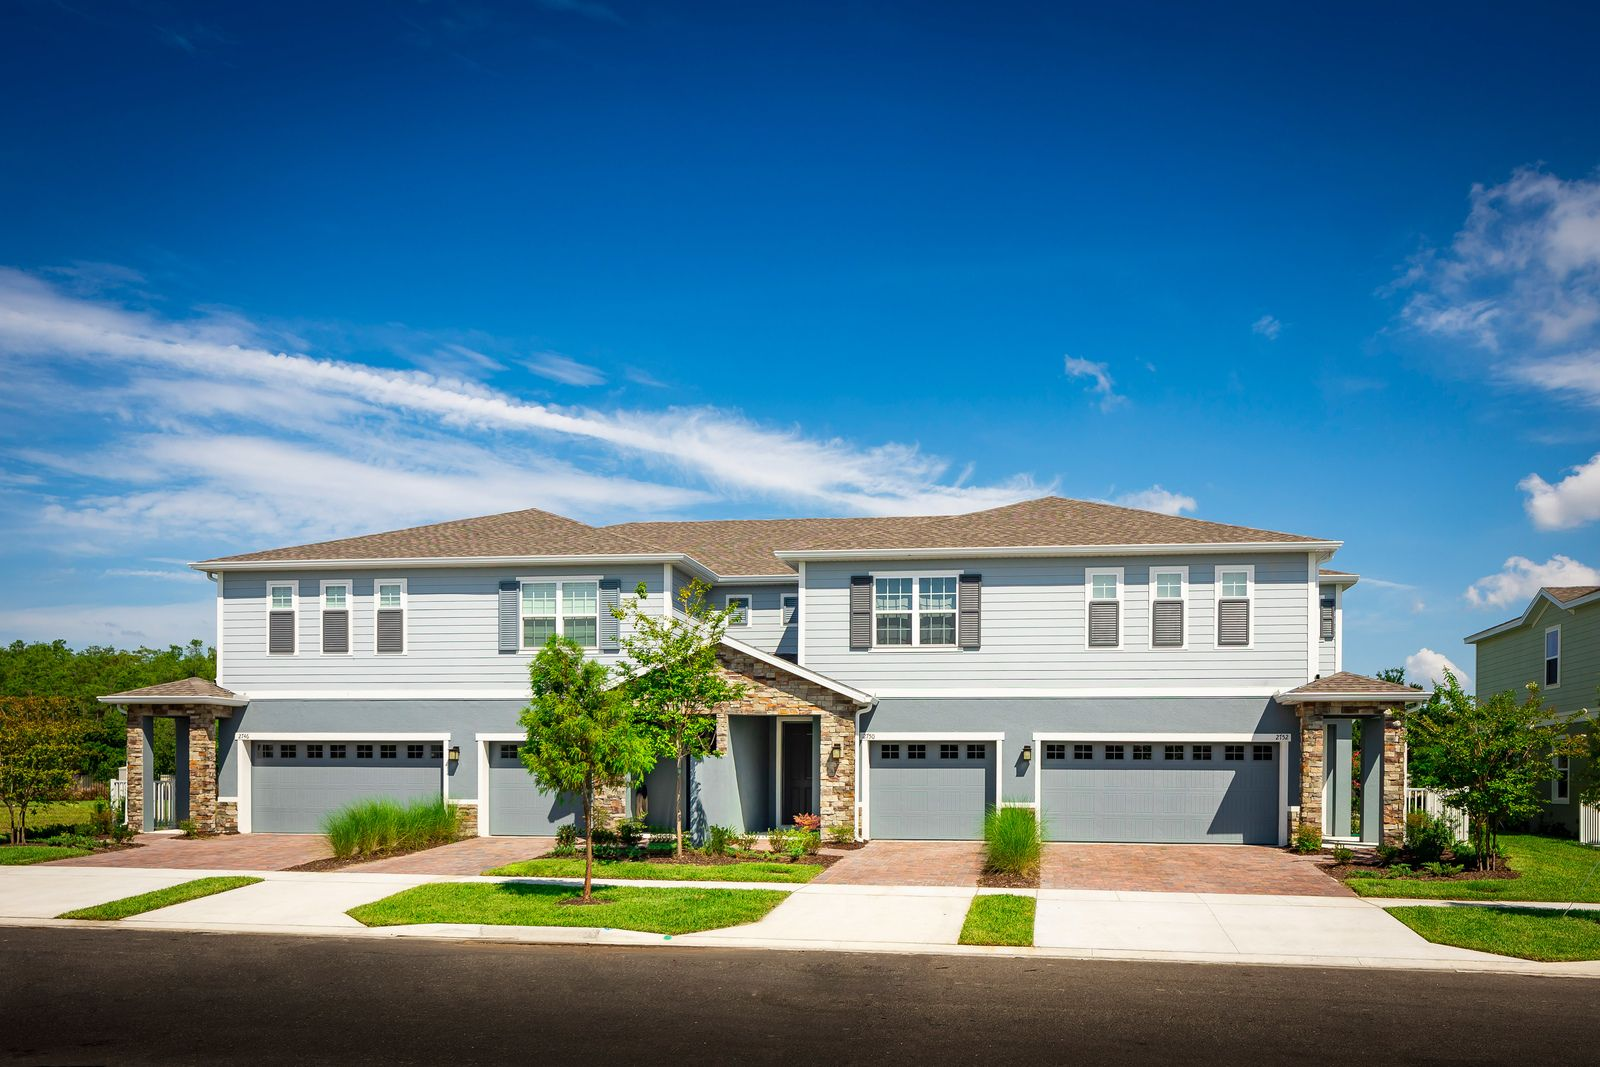 Welcome to Cypress Ridge!:Affordable, resort-style, maintenance-free townhome living, from the $250s.Schedule your tour today to see our spacious floorplans!Se habla Español.